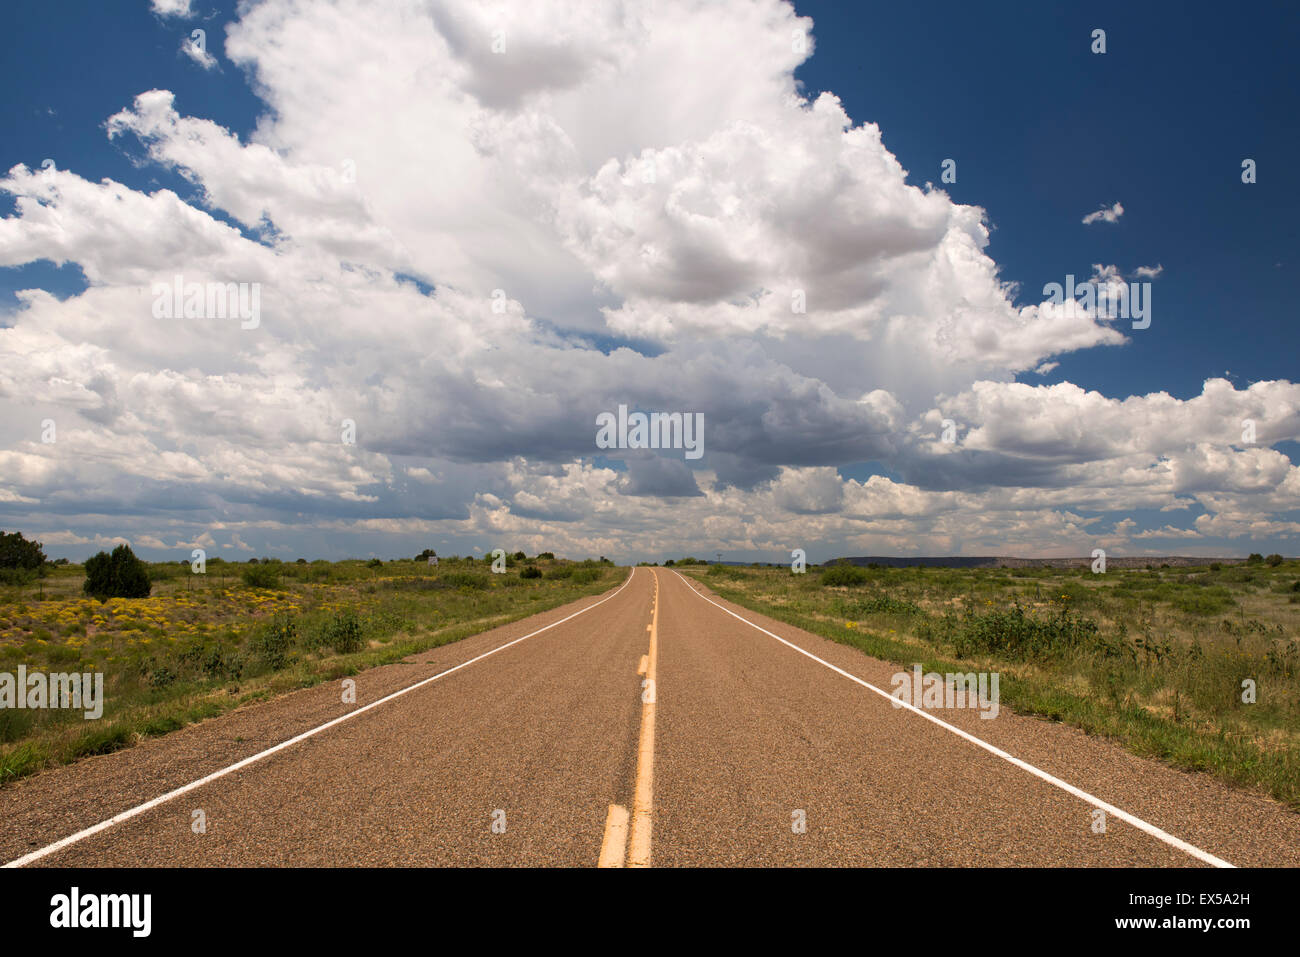 Route 102 in New Mexico - Stock Image